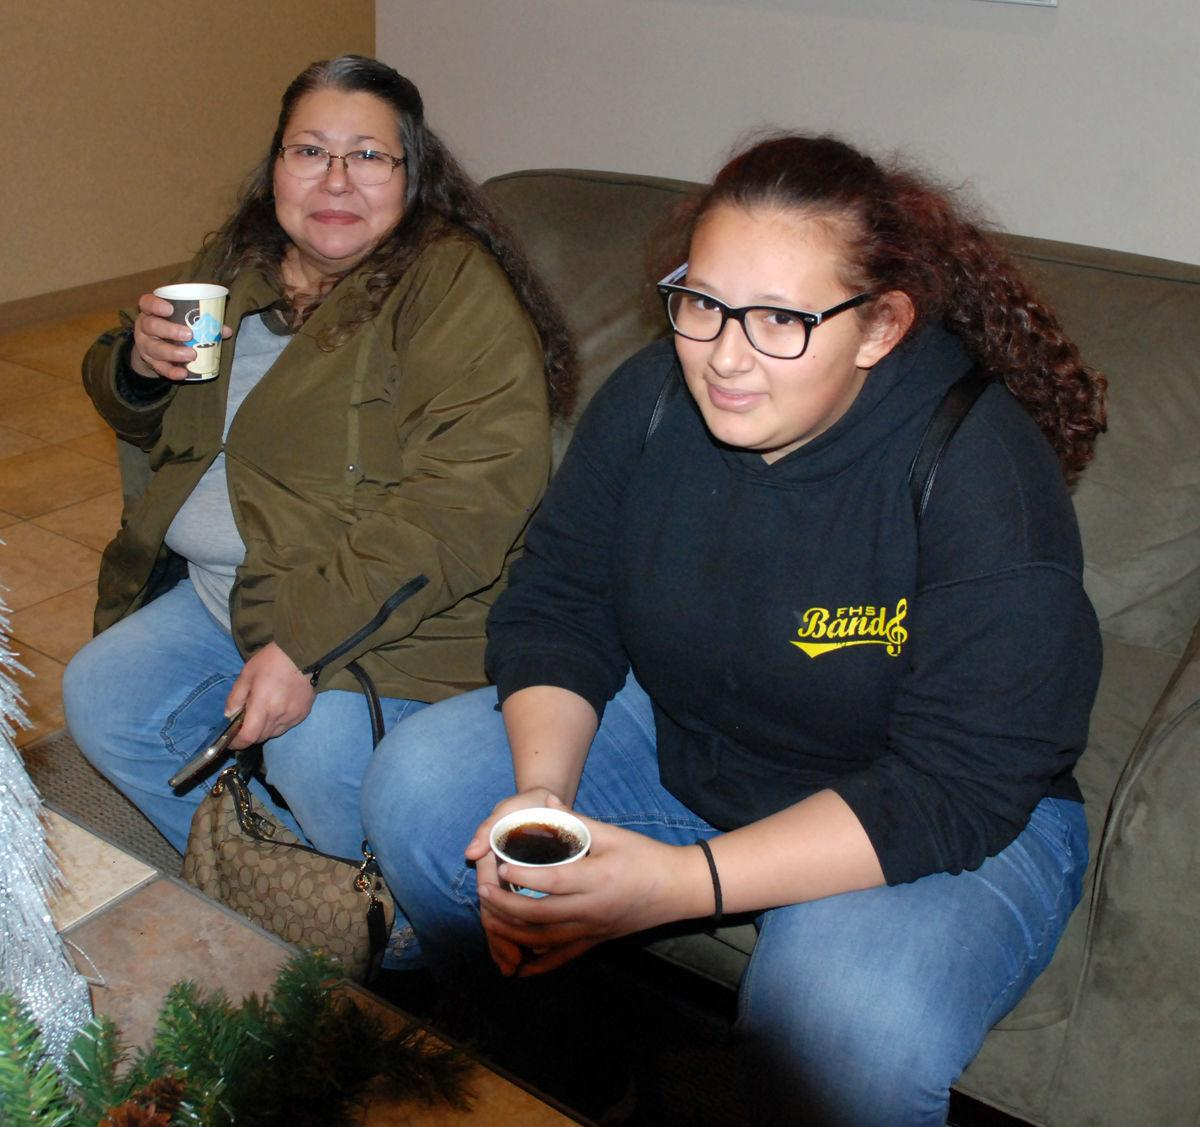 Students talk about being inside school during lockdown | Local News